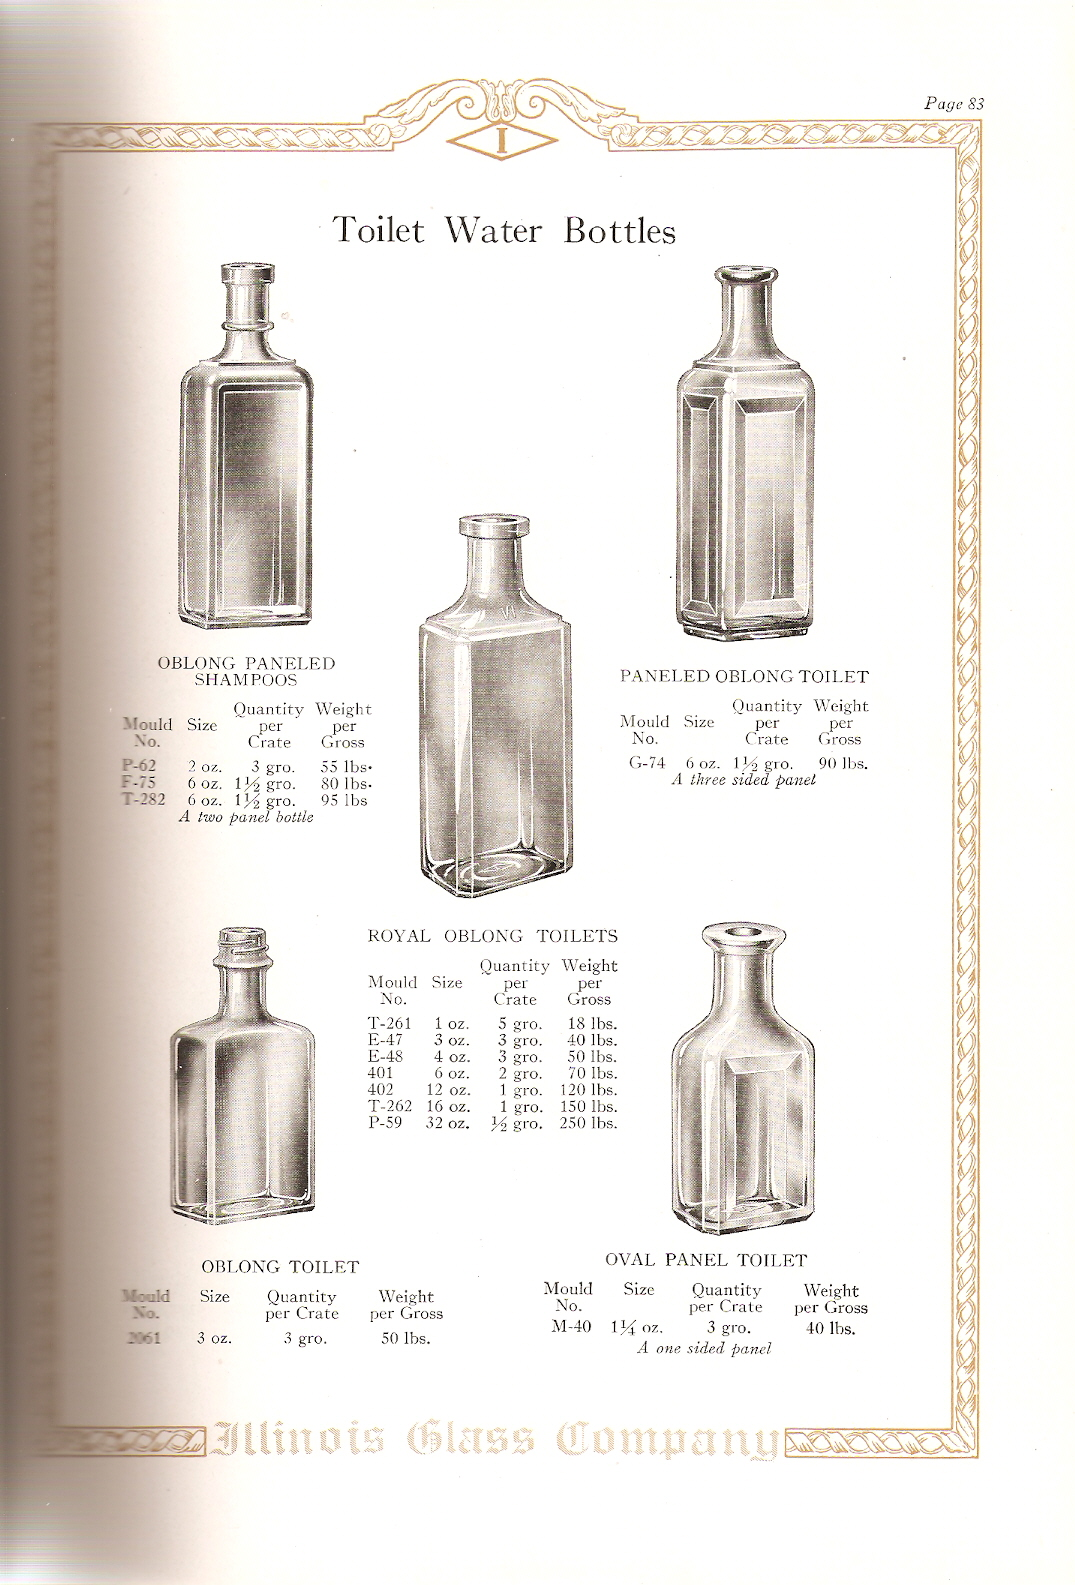 Illinois glass co 1926 catalog page 83 toilet water bottles biocorpaavc Gallery